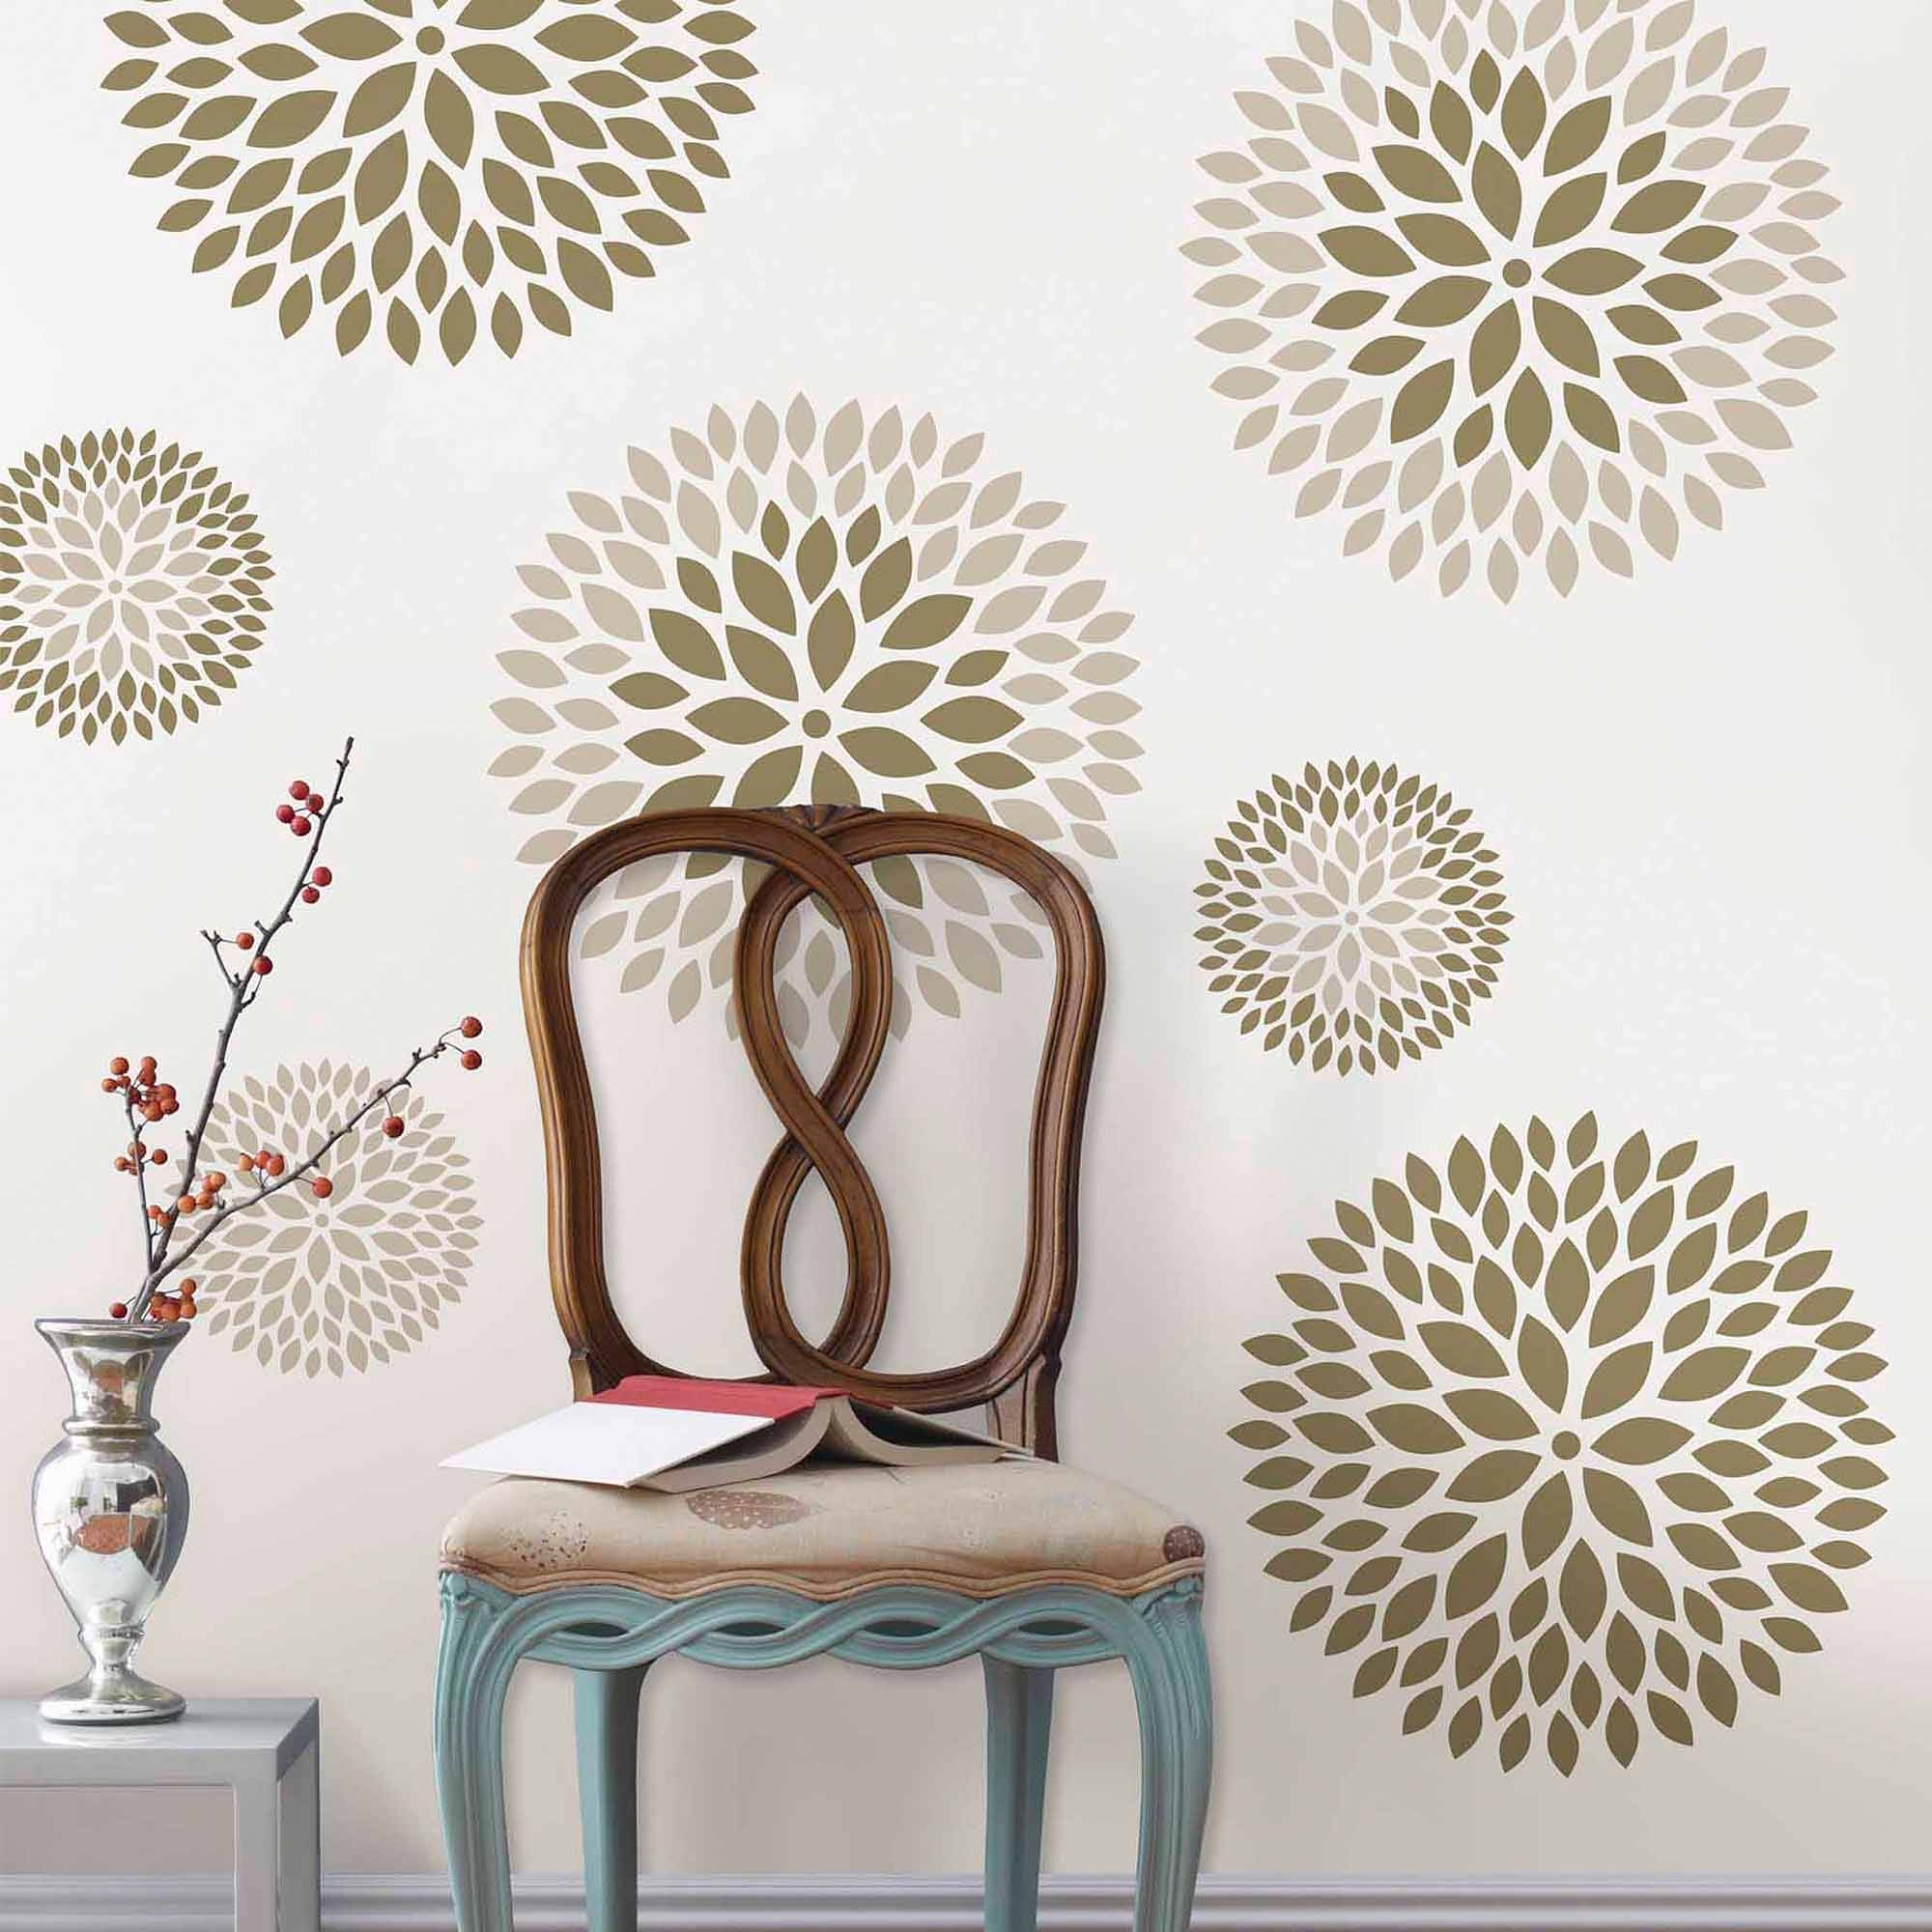 Wallpops Chrysanthemum Wall Art Decals Kit – Walmart Regarding 2018 Walmart Wall Stickers (View 23 of 25)